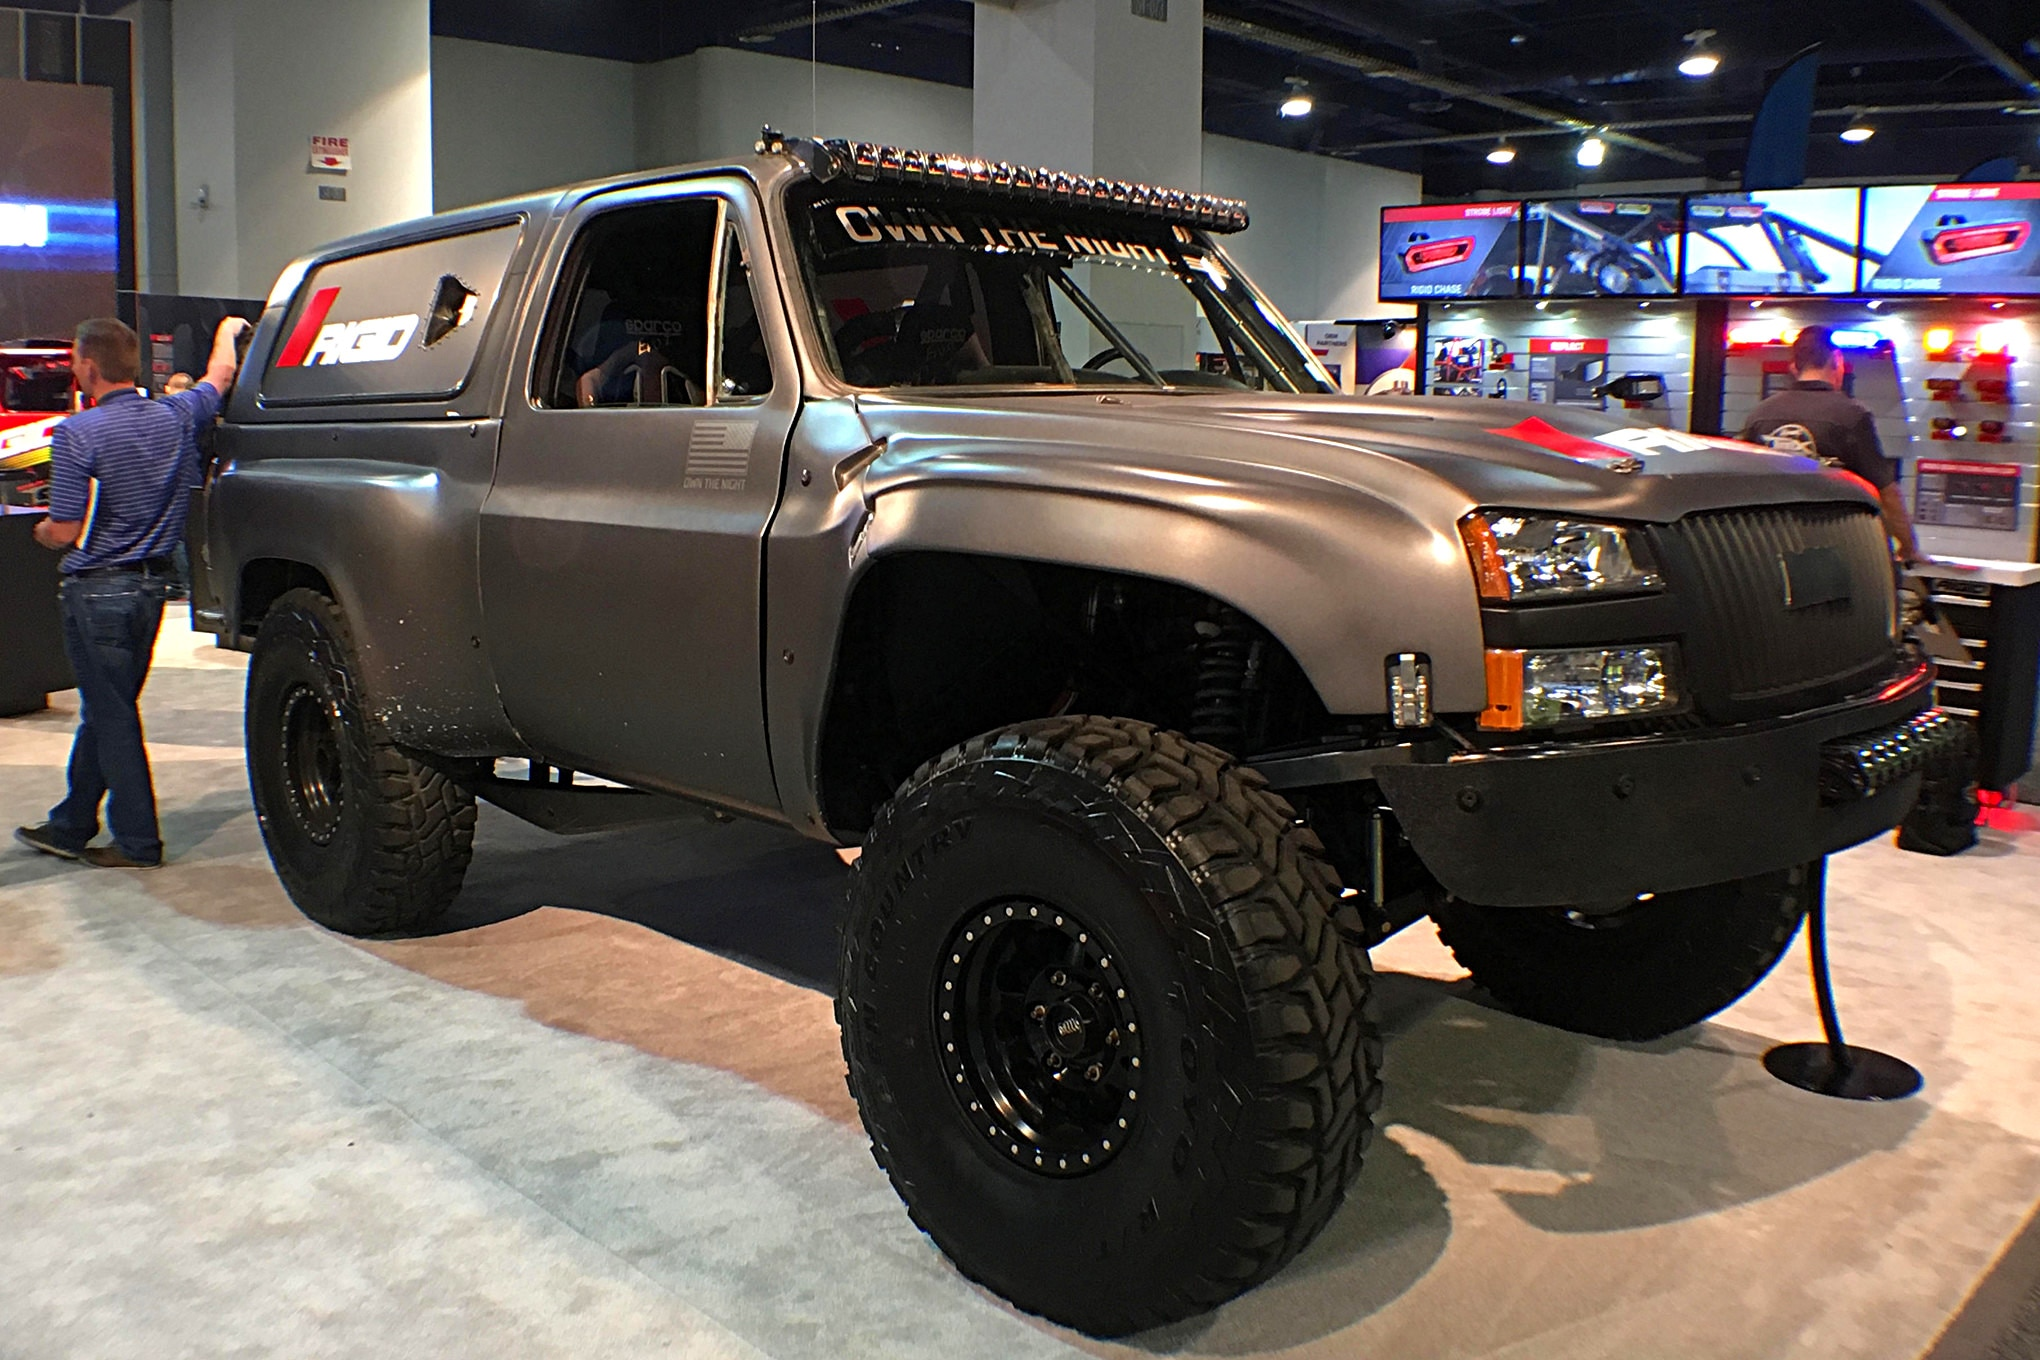 Rigid had this beautiful, gunmetal gray Chevy prerunner in their booth.